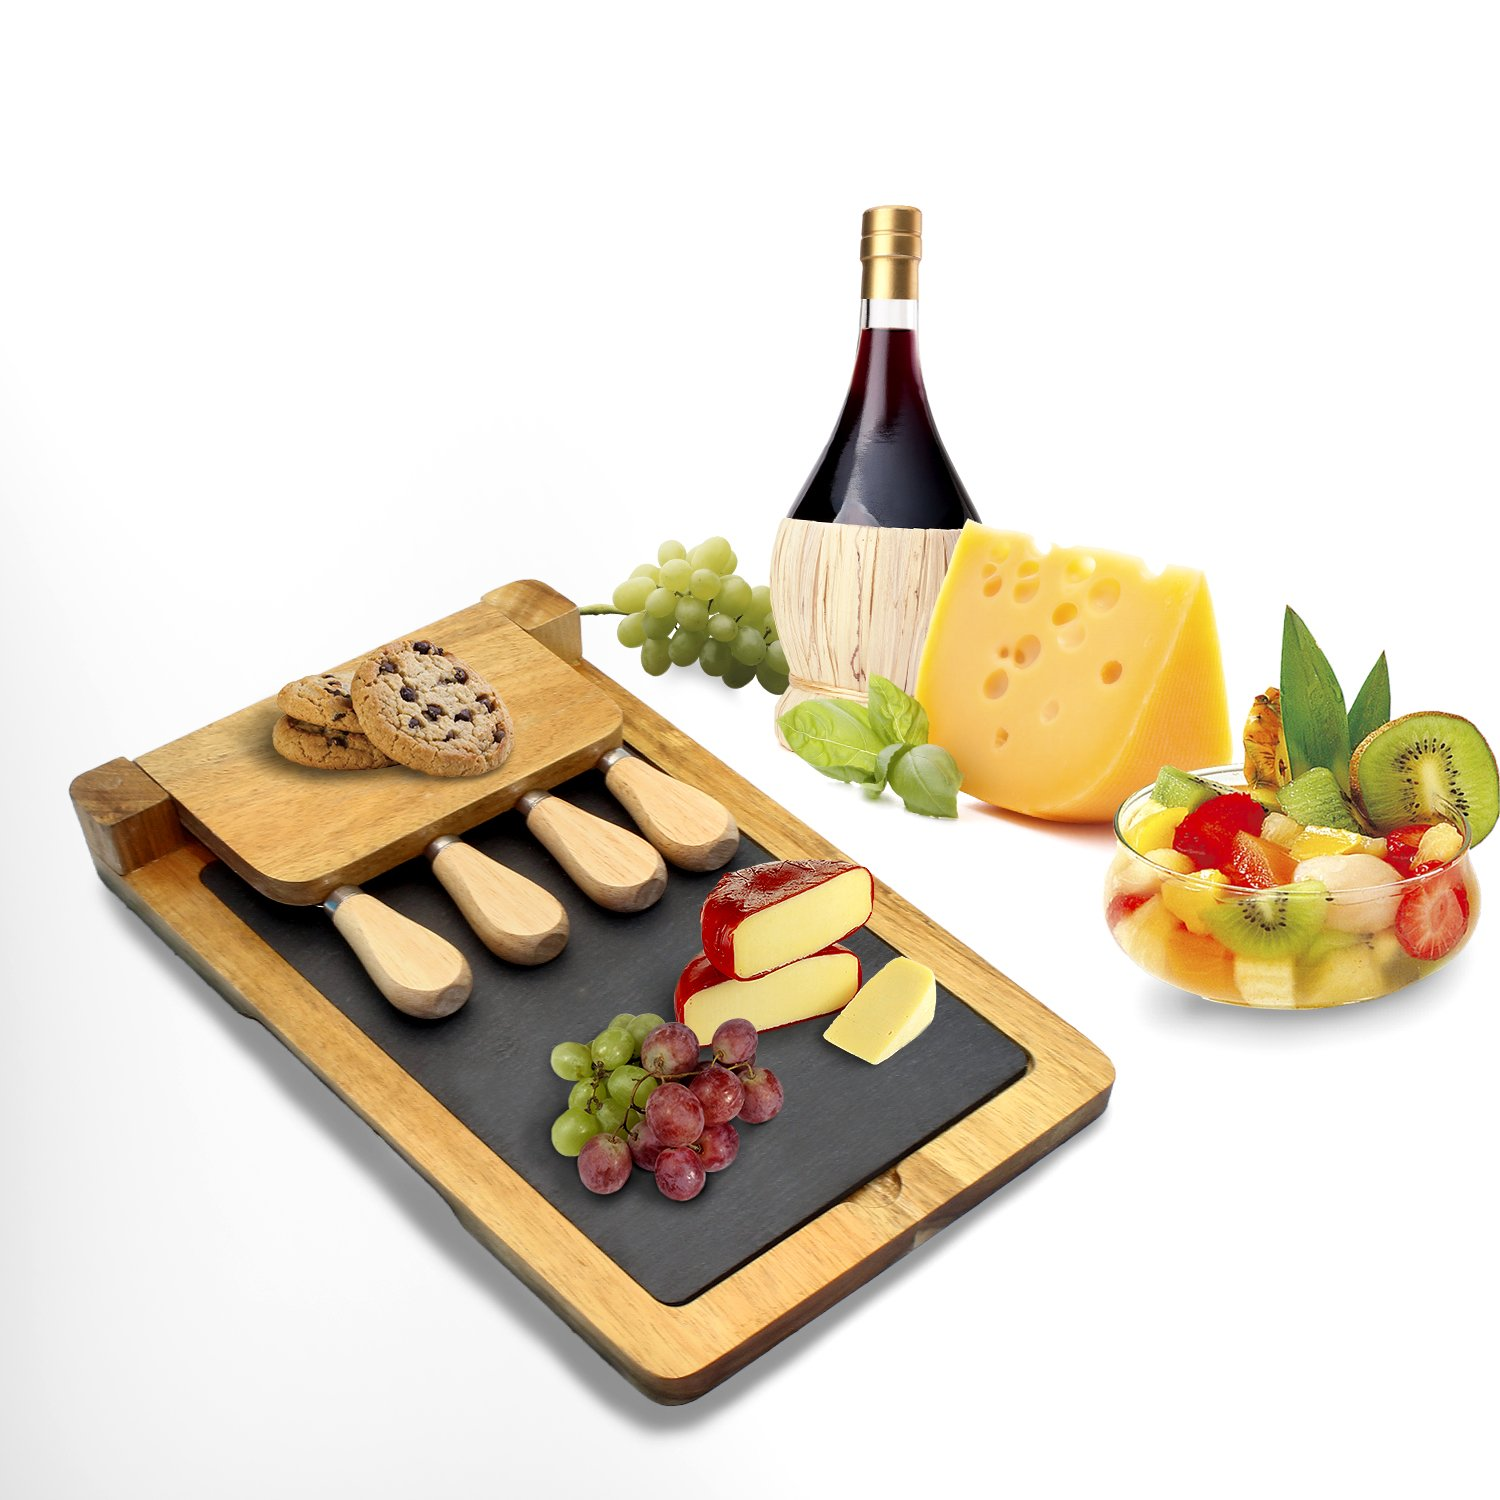 """Zen Kitchen Acacia Wood Cheese Board Set with Removable Slate Cheese Board, Comes with Full Cultery Set and Non-Slip Feet with Foldable Easy Storage Design,Great House Warming Gift, 12""""x 8"""""""